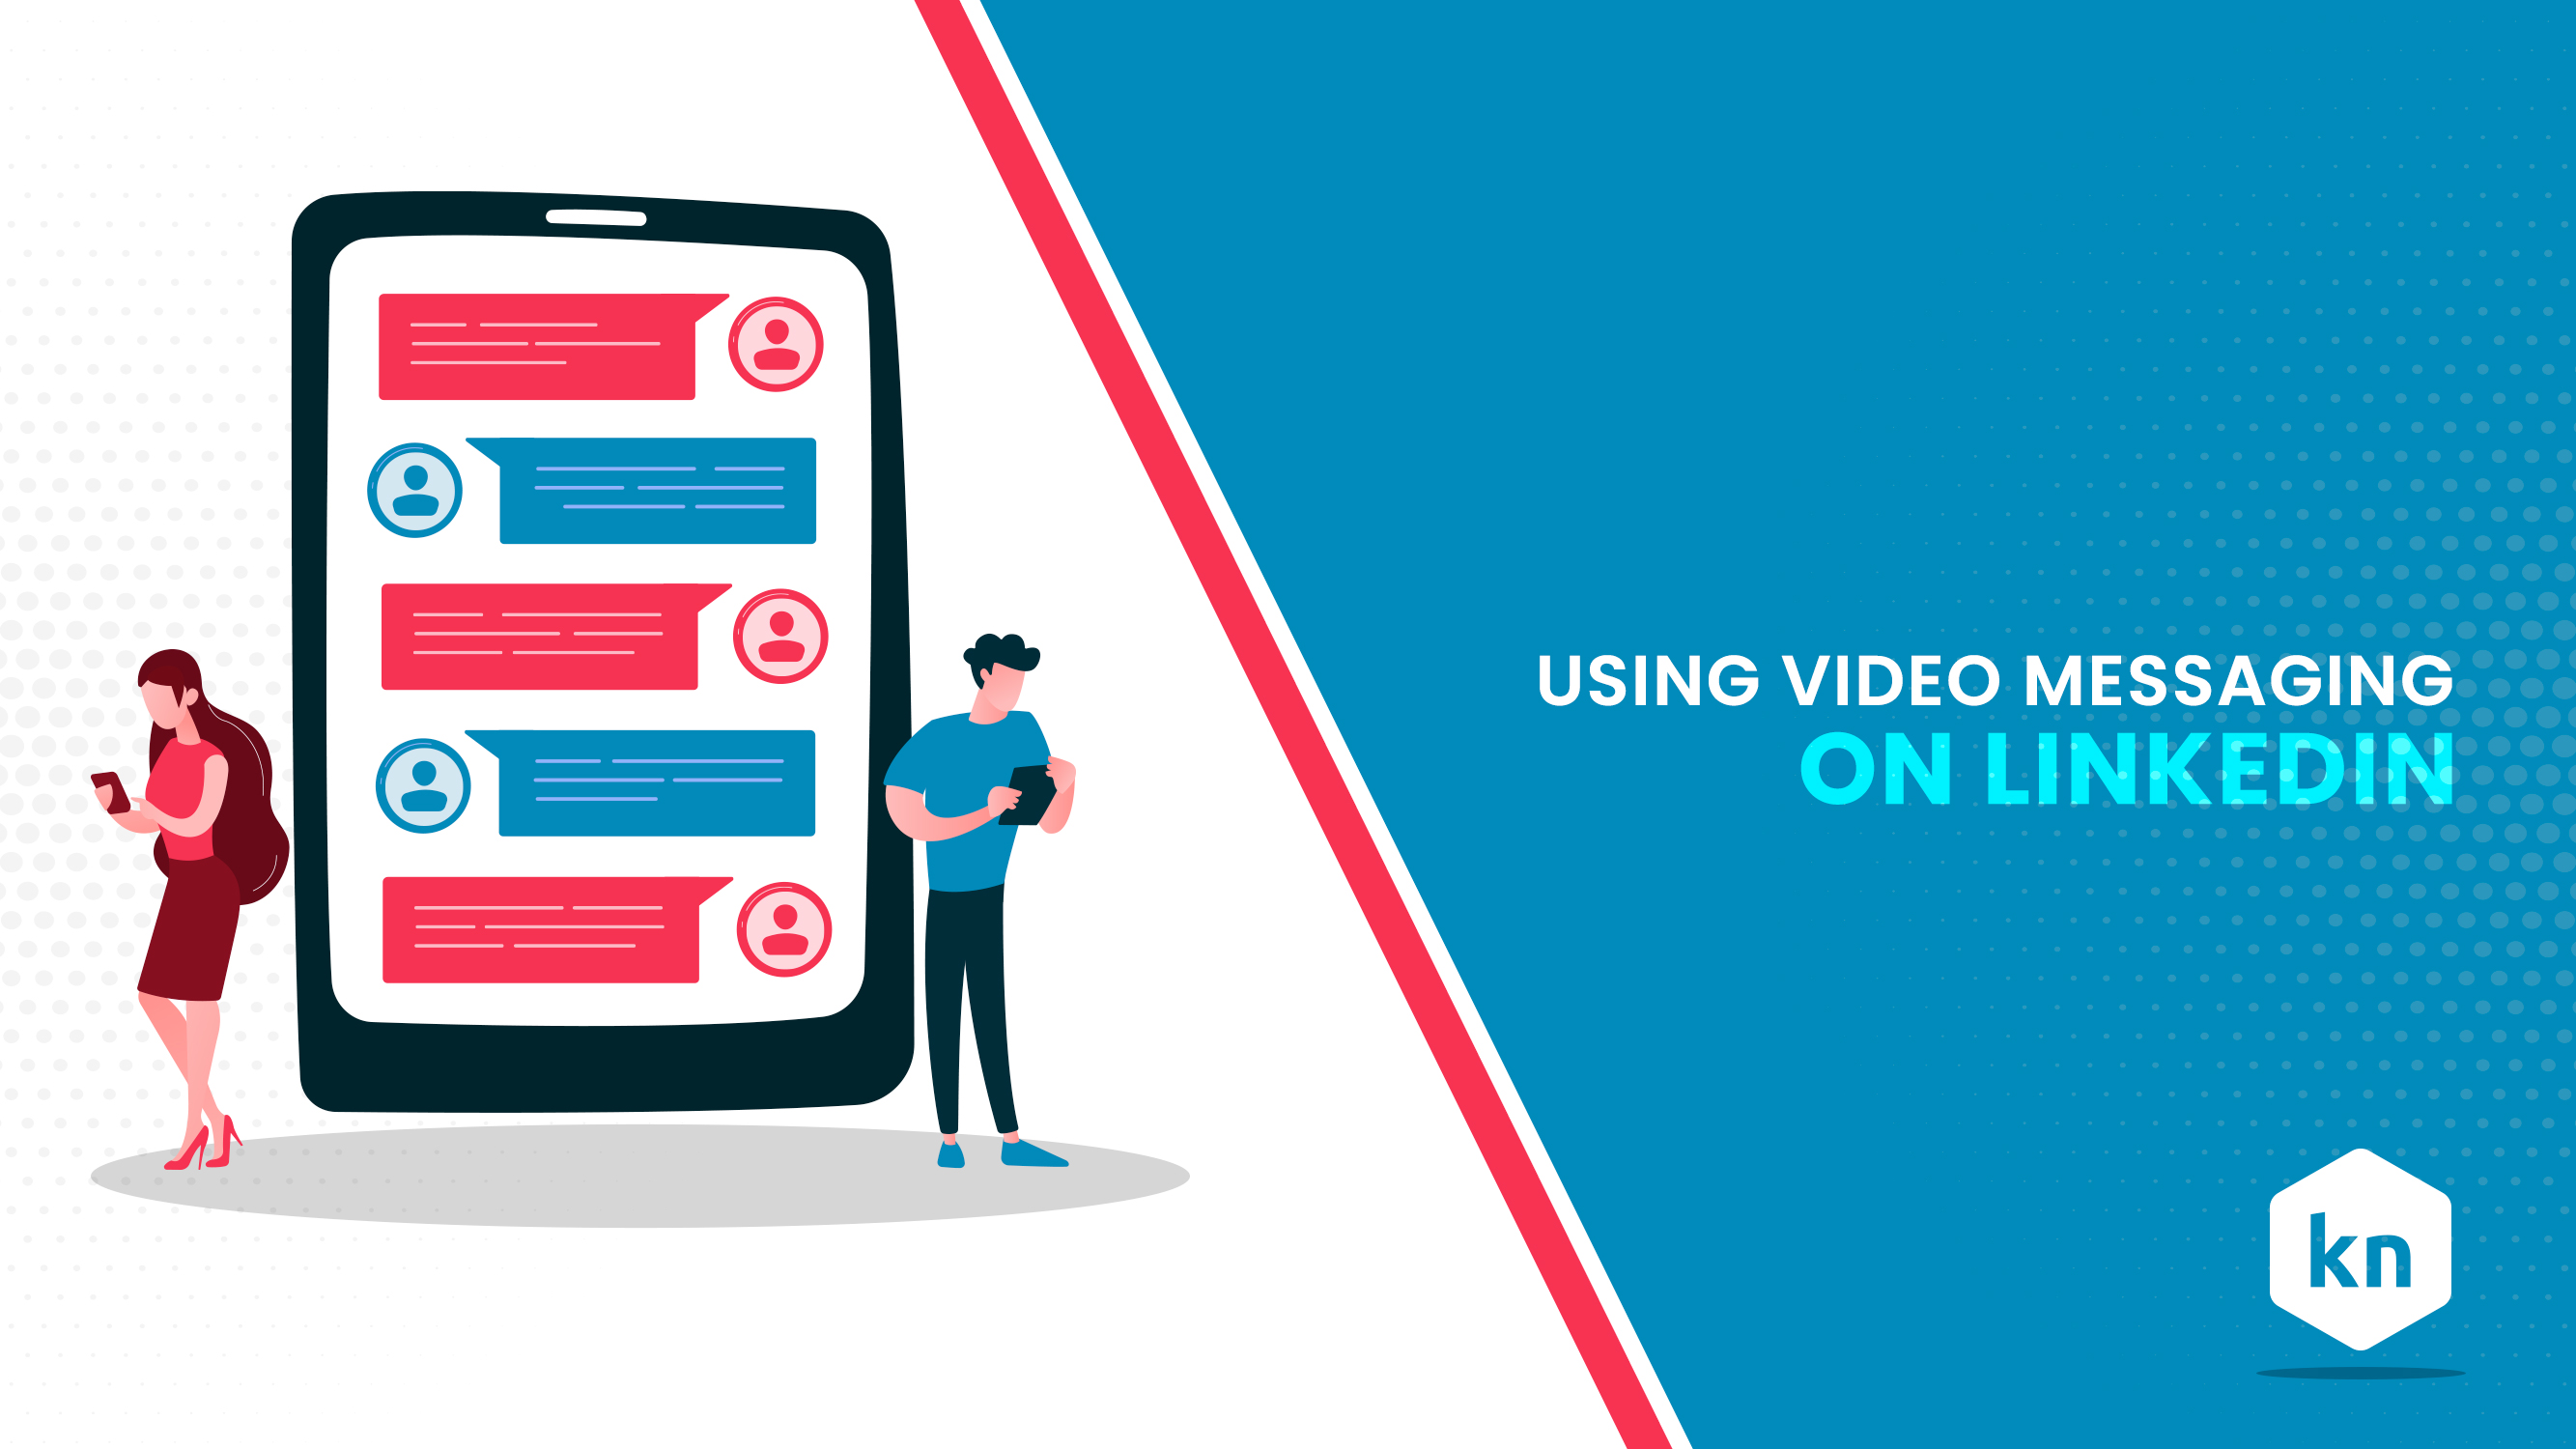 Using Video Messaging On LinkedIn